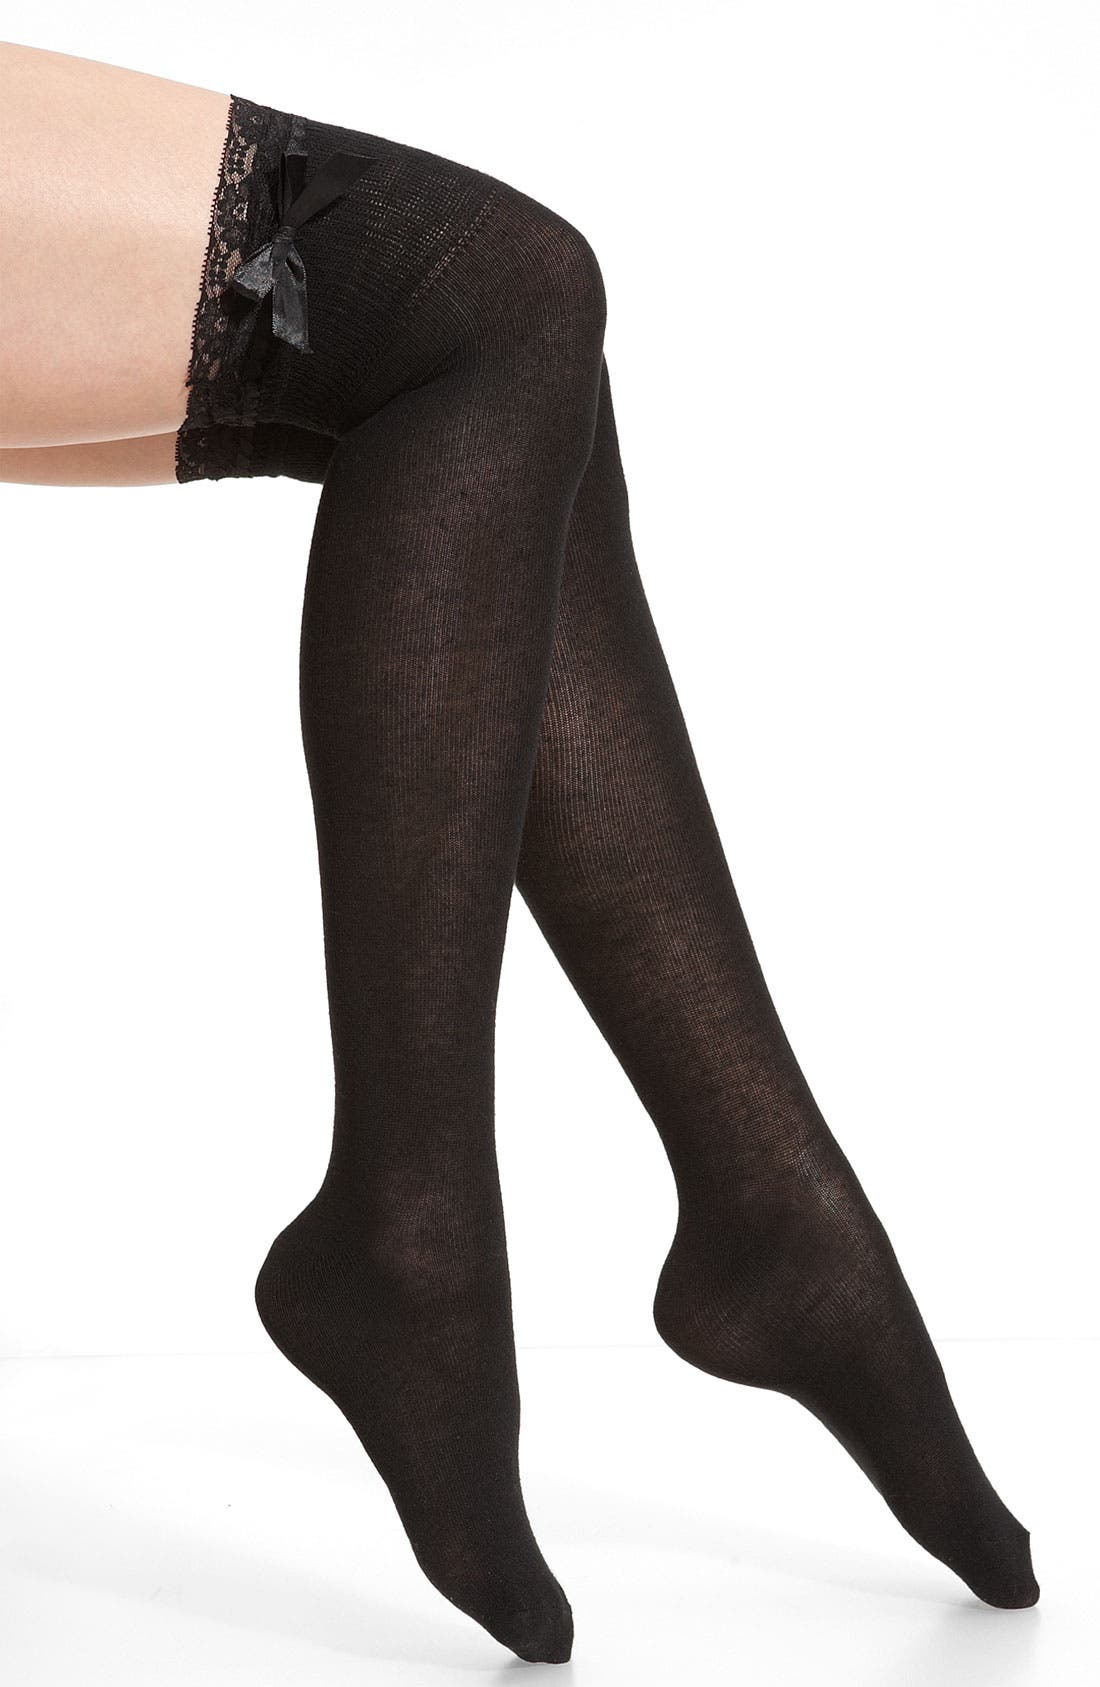 Main Image - Nordstrom 'Ribbon Lace' Over the Knee Socks